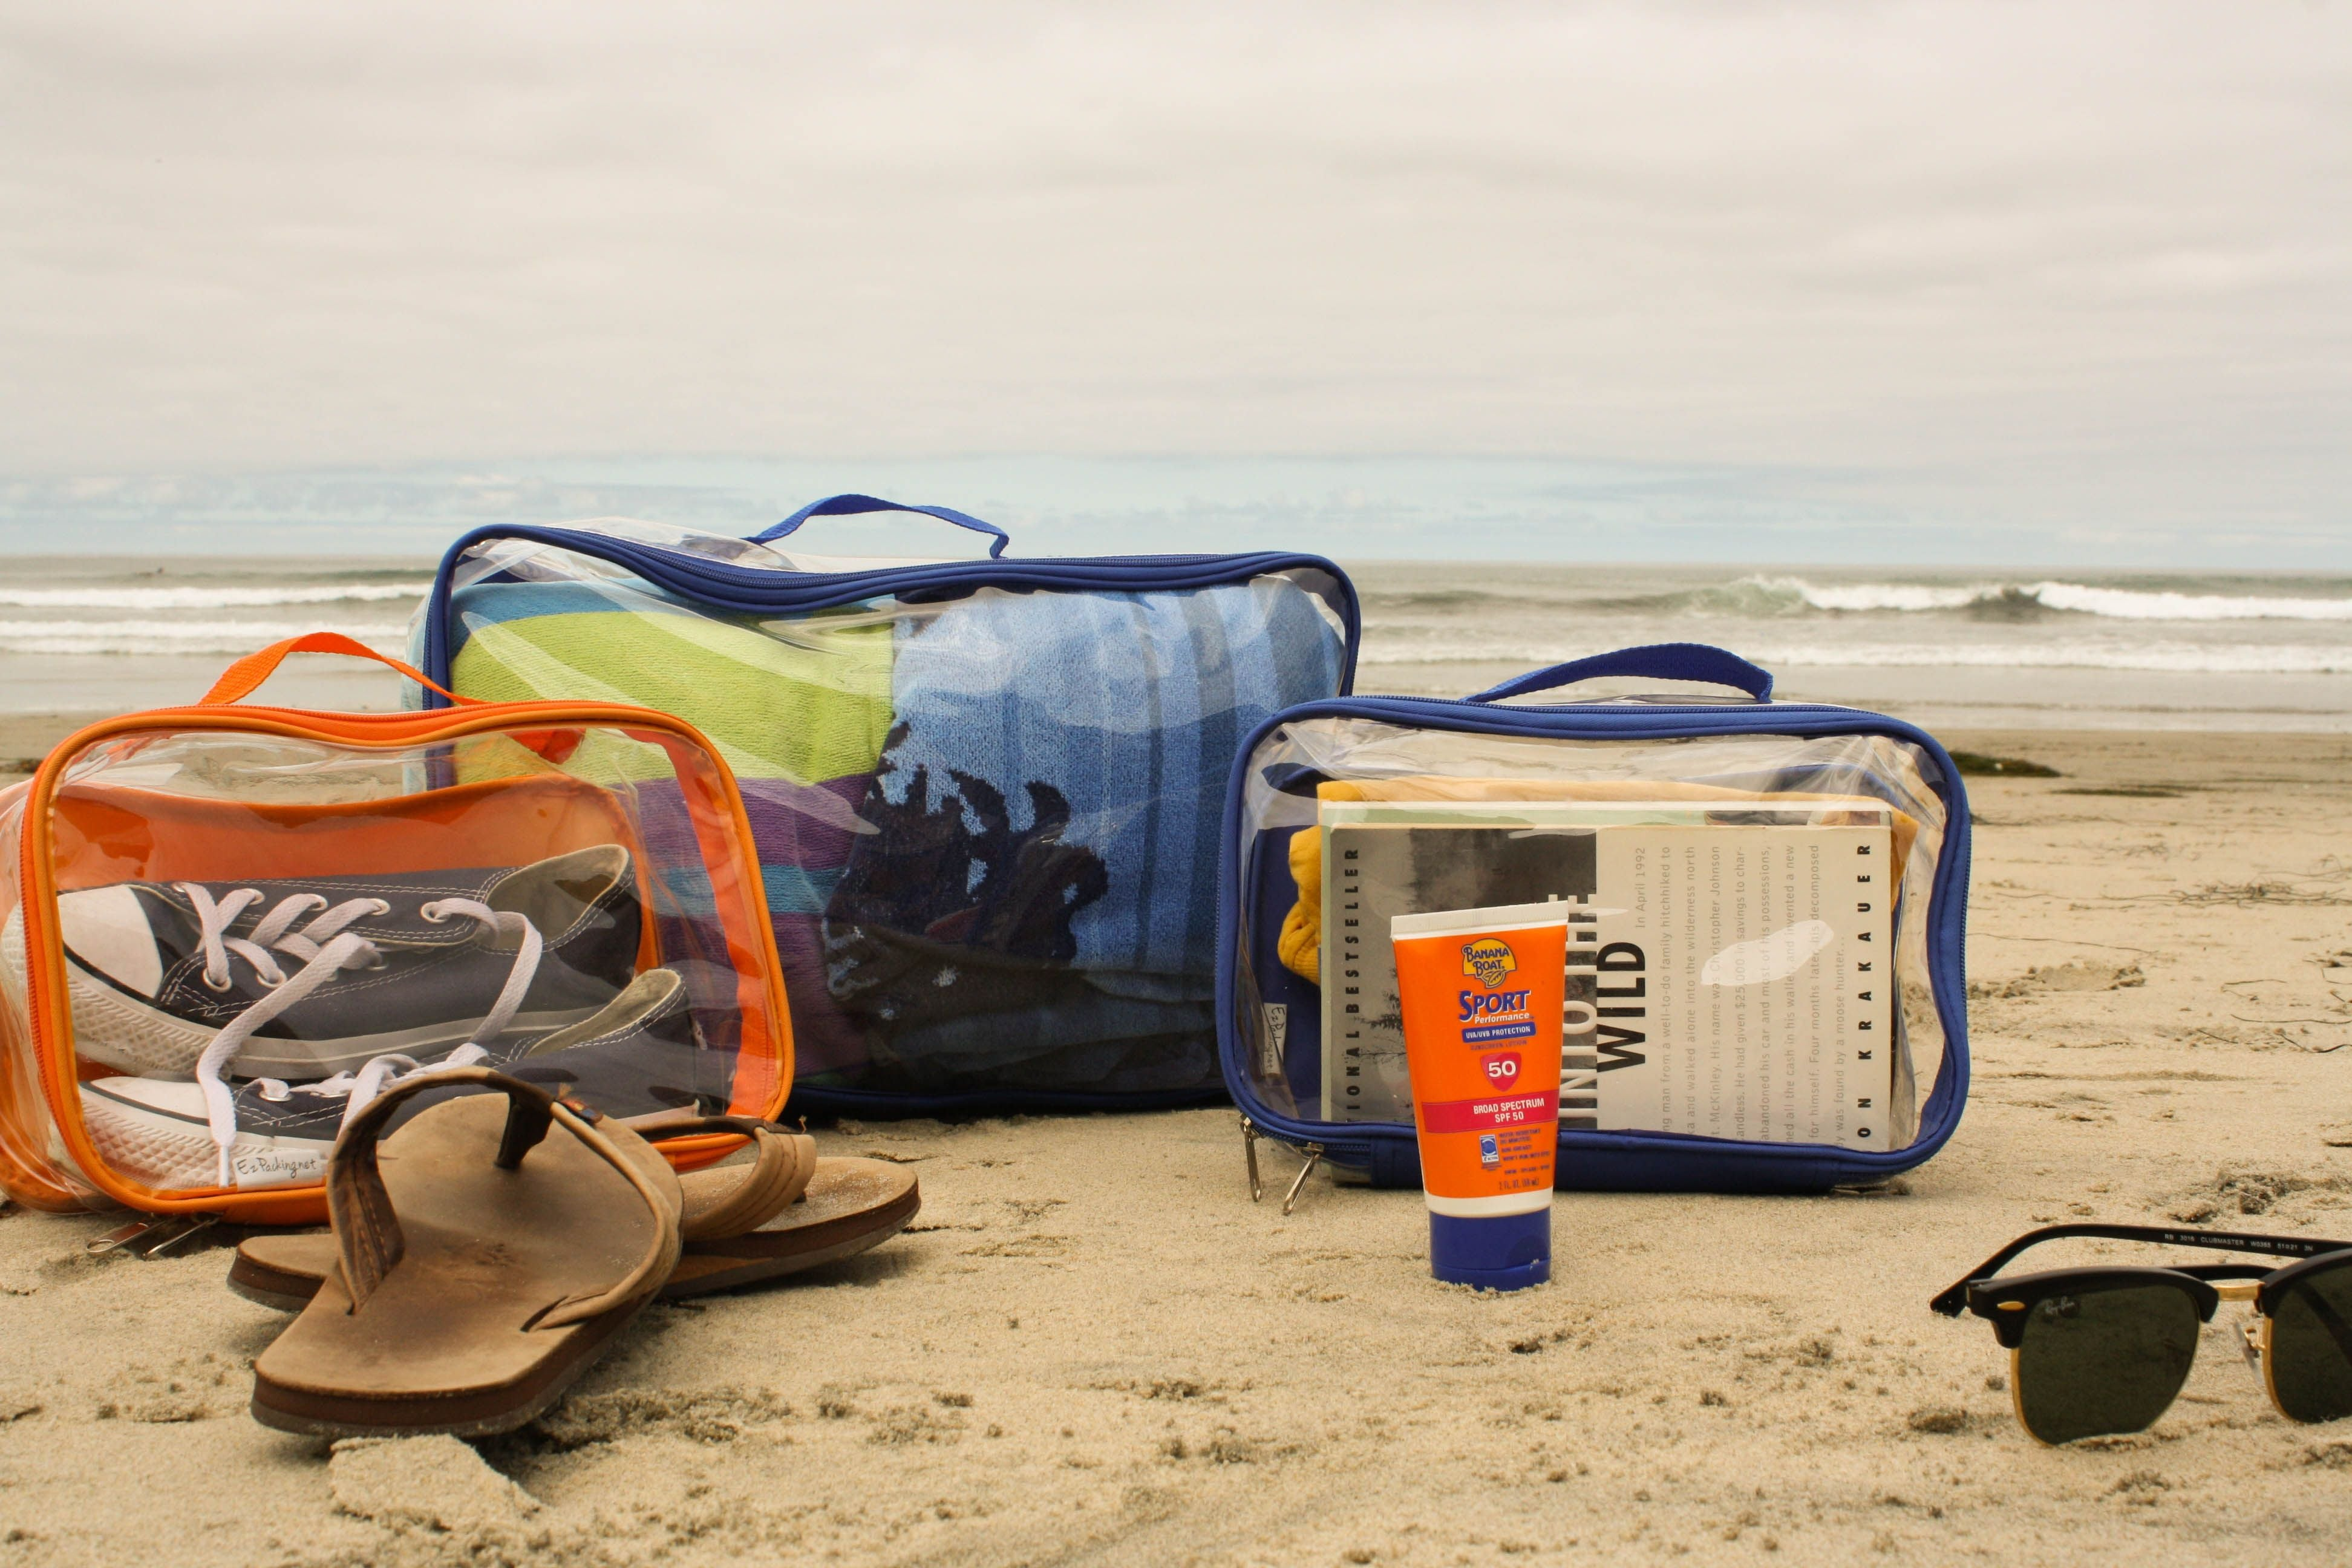 Beach essentials packed in clear packing cubes